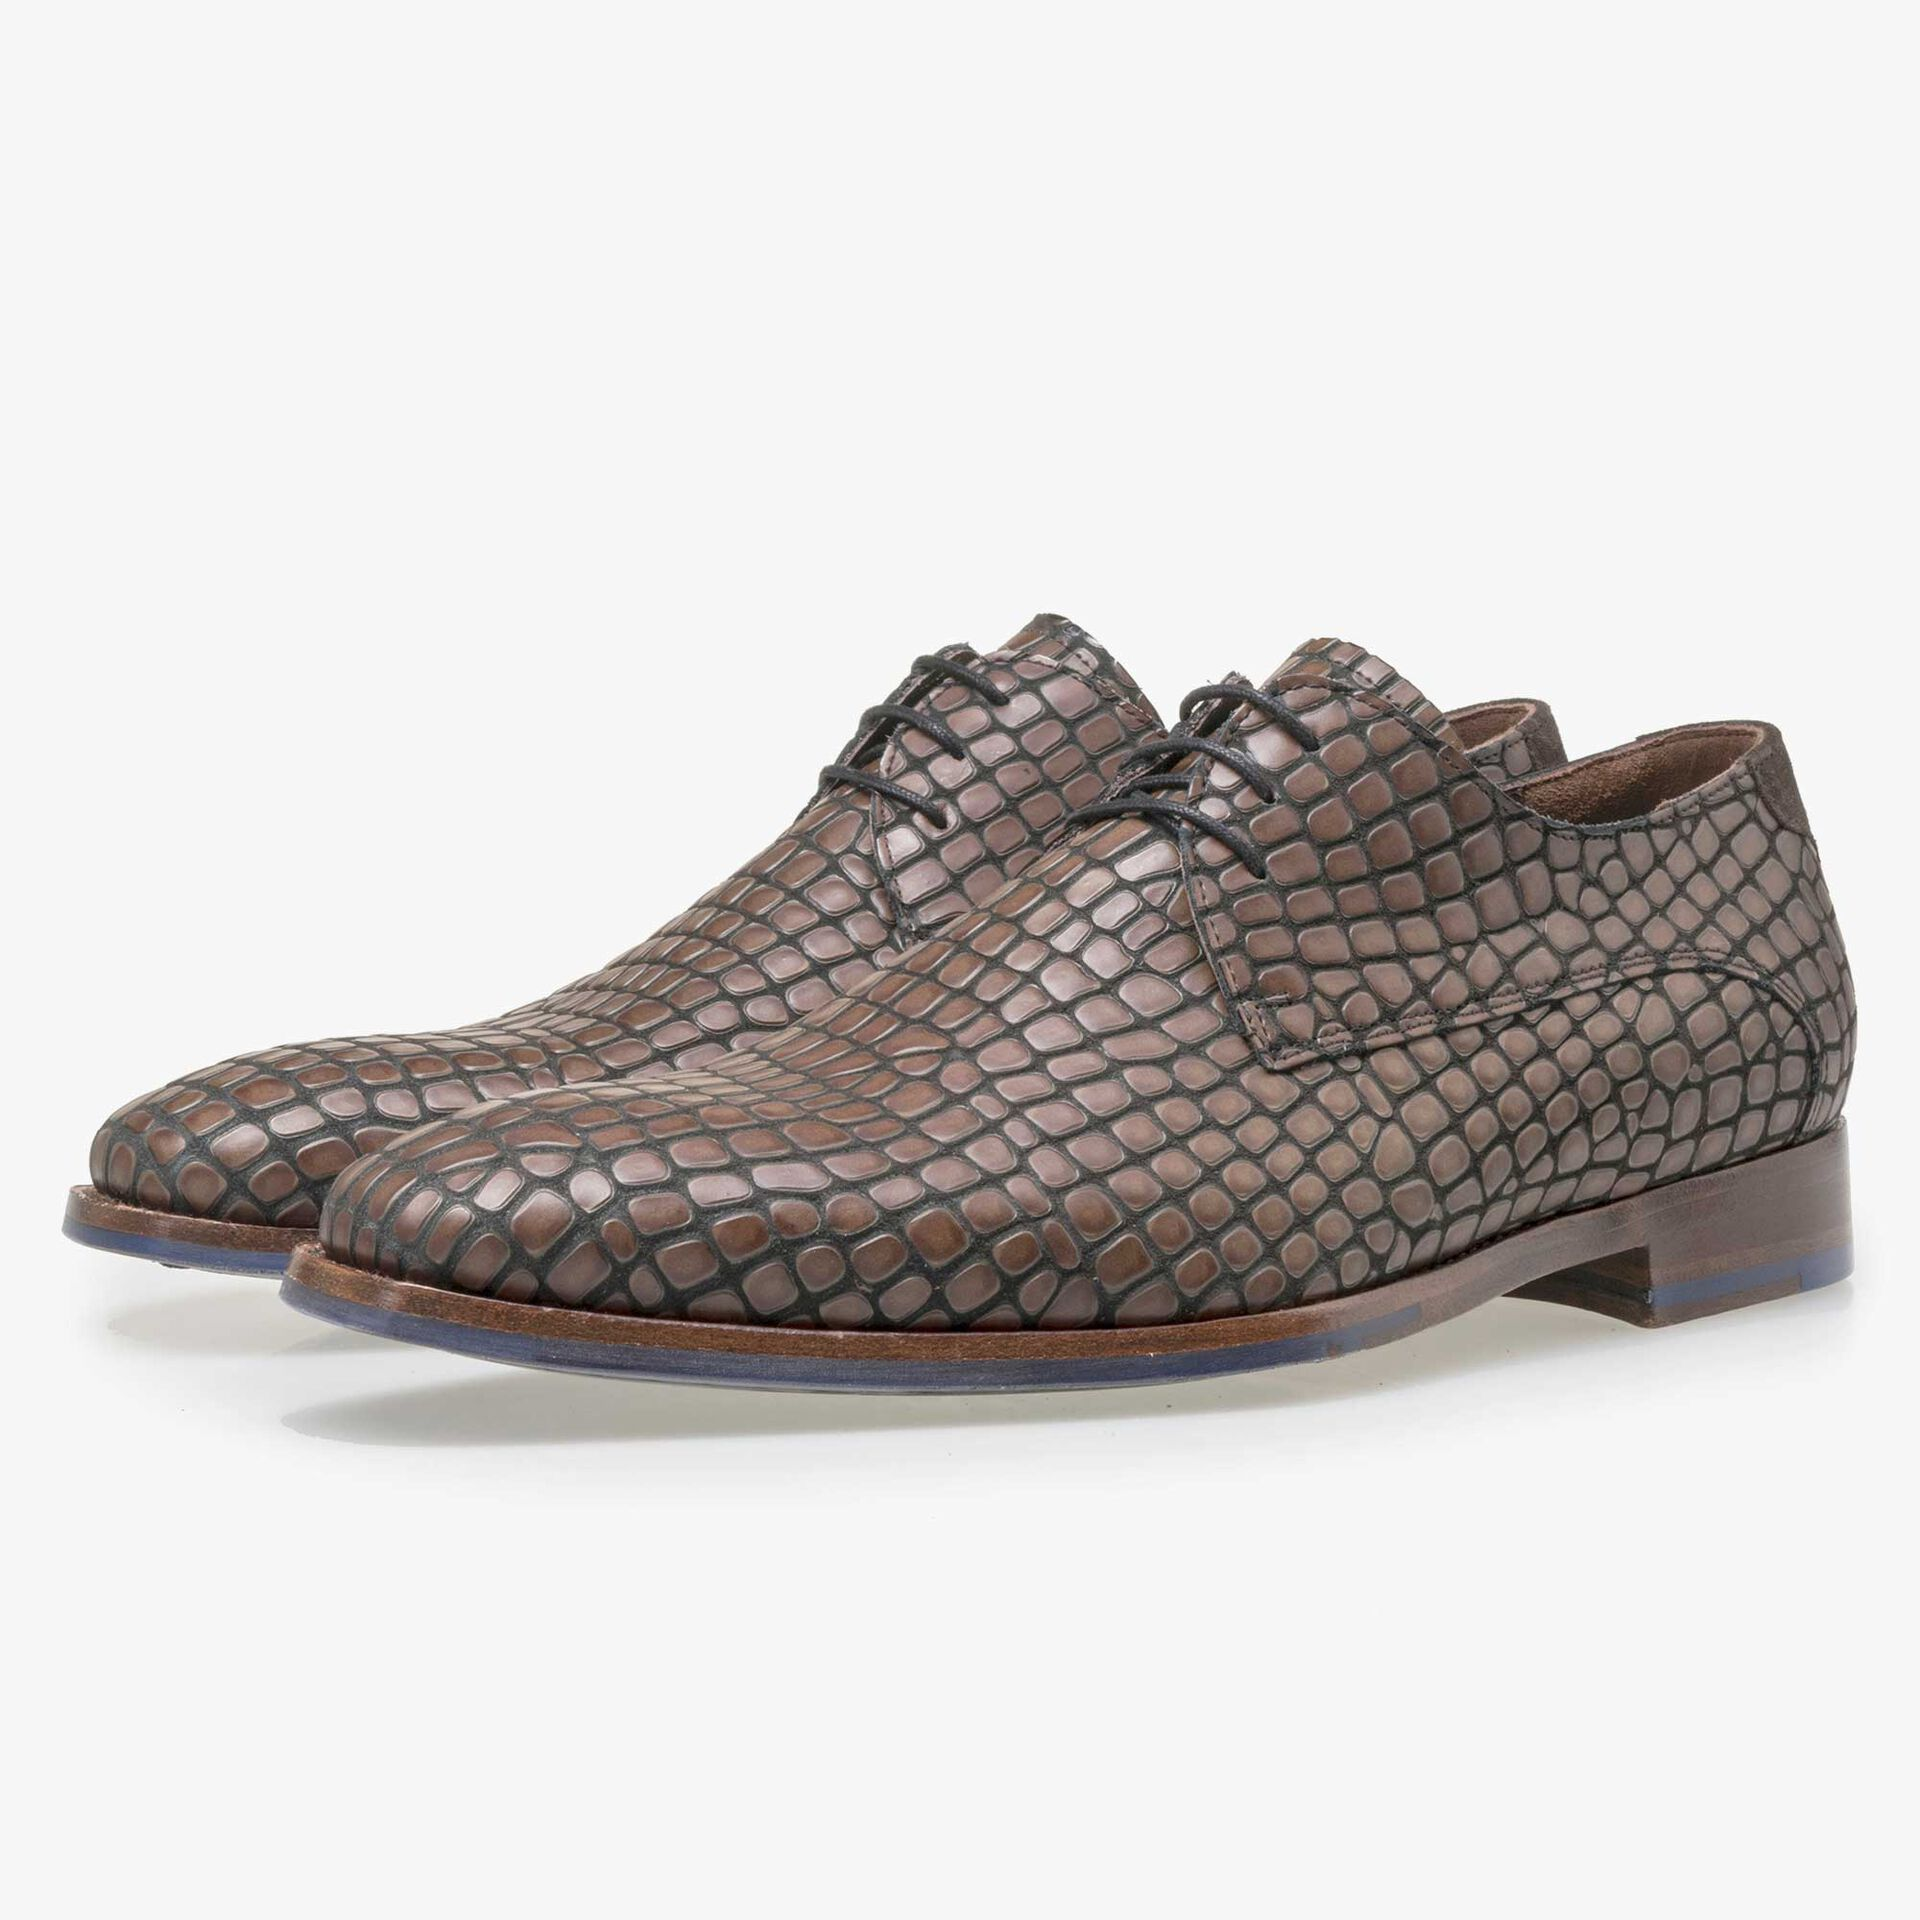 Floris van Bommel black calf's leather lace shoe finished with a brown reptile pattern